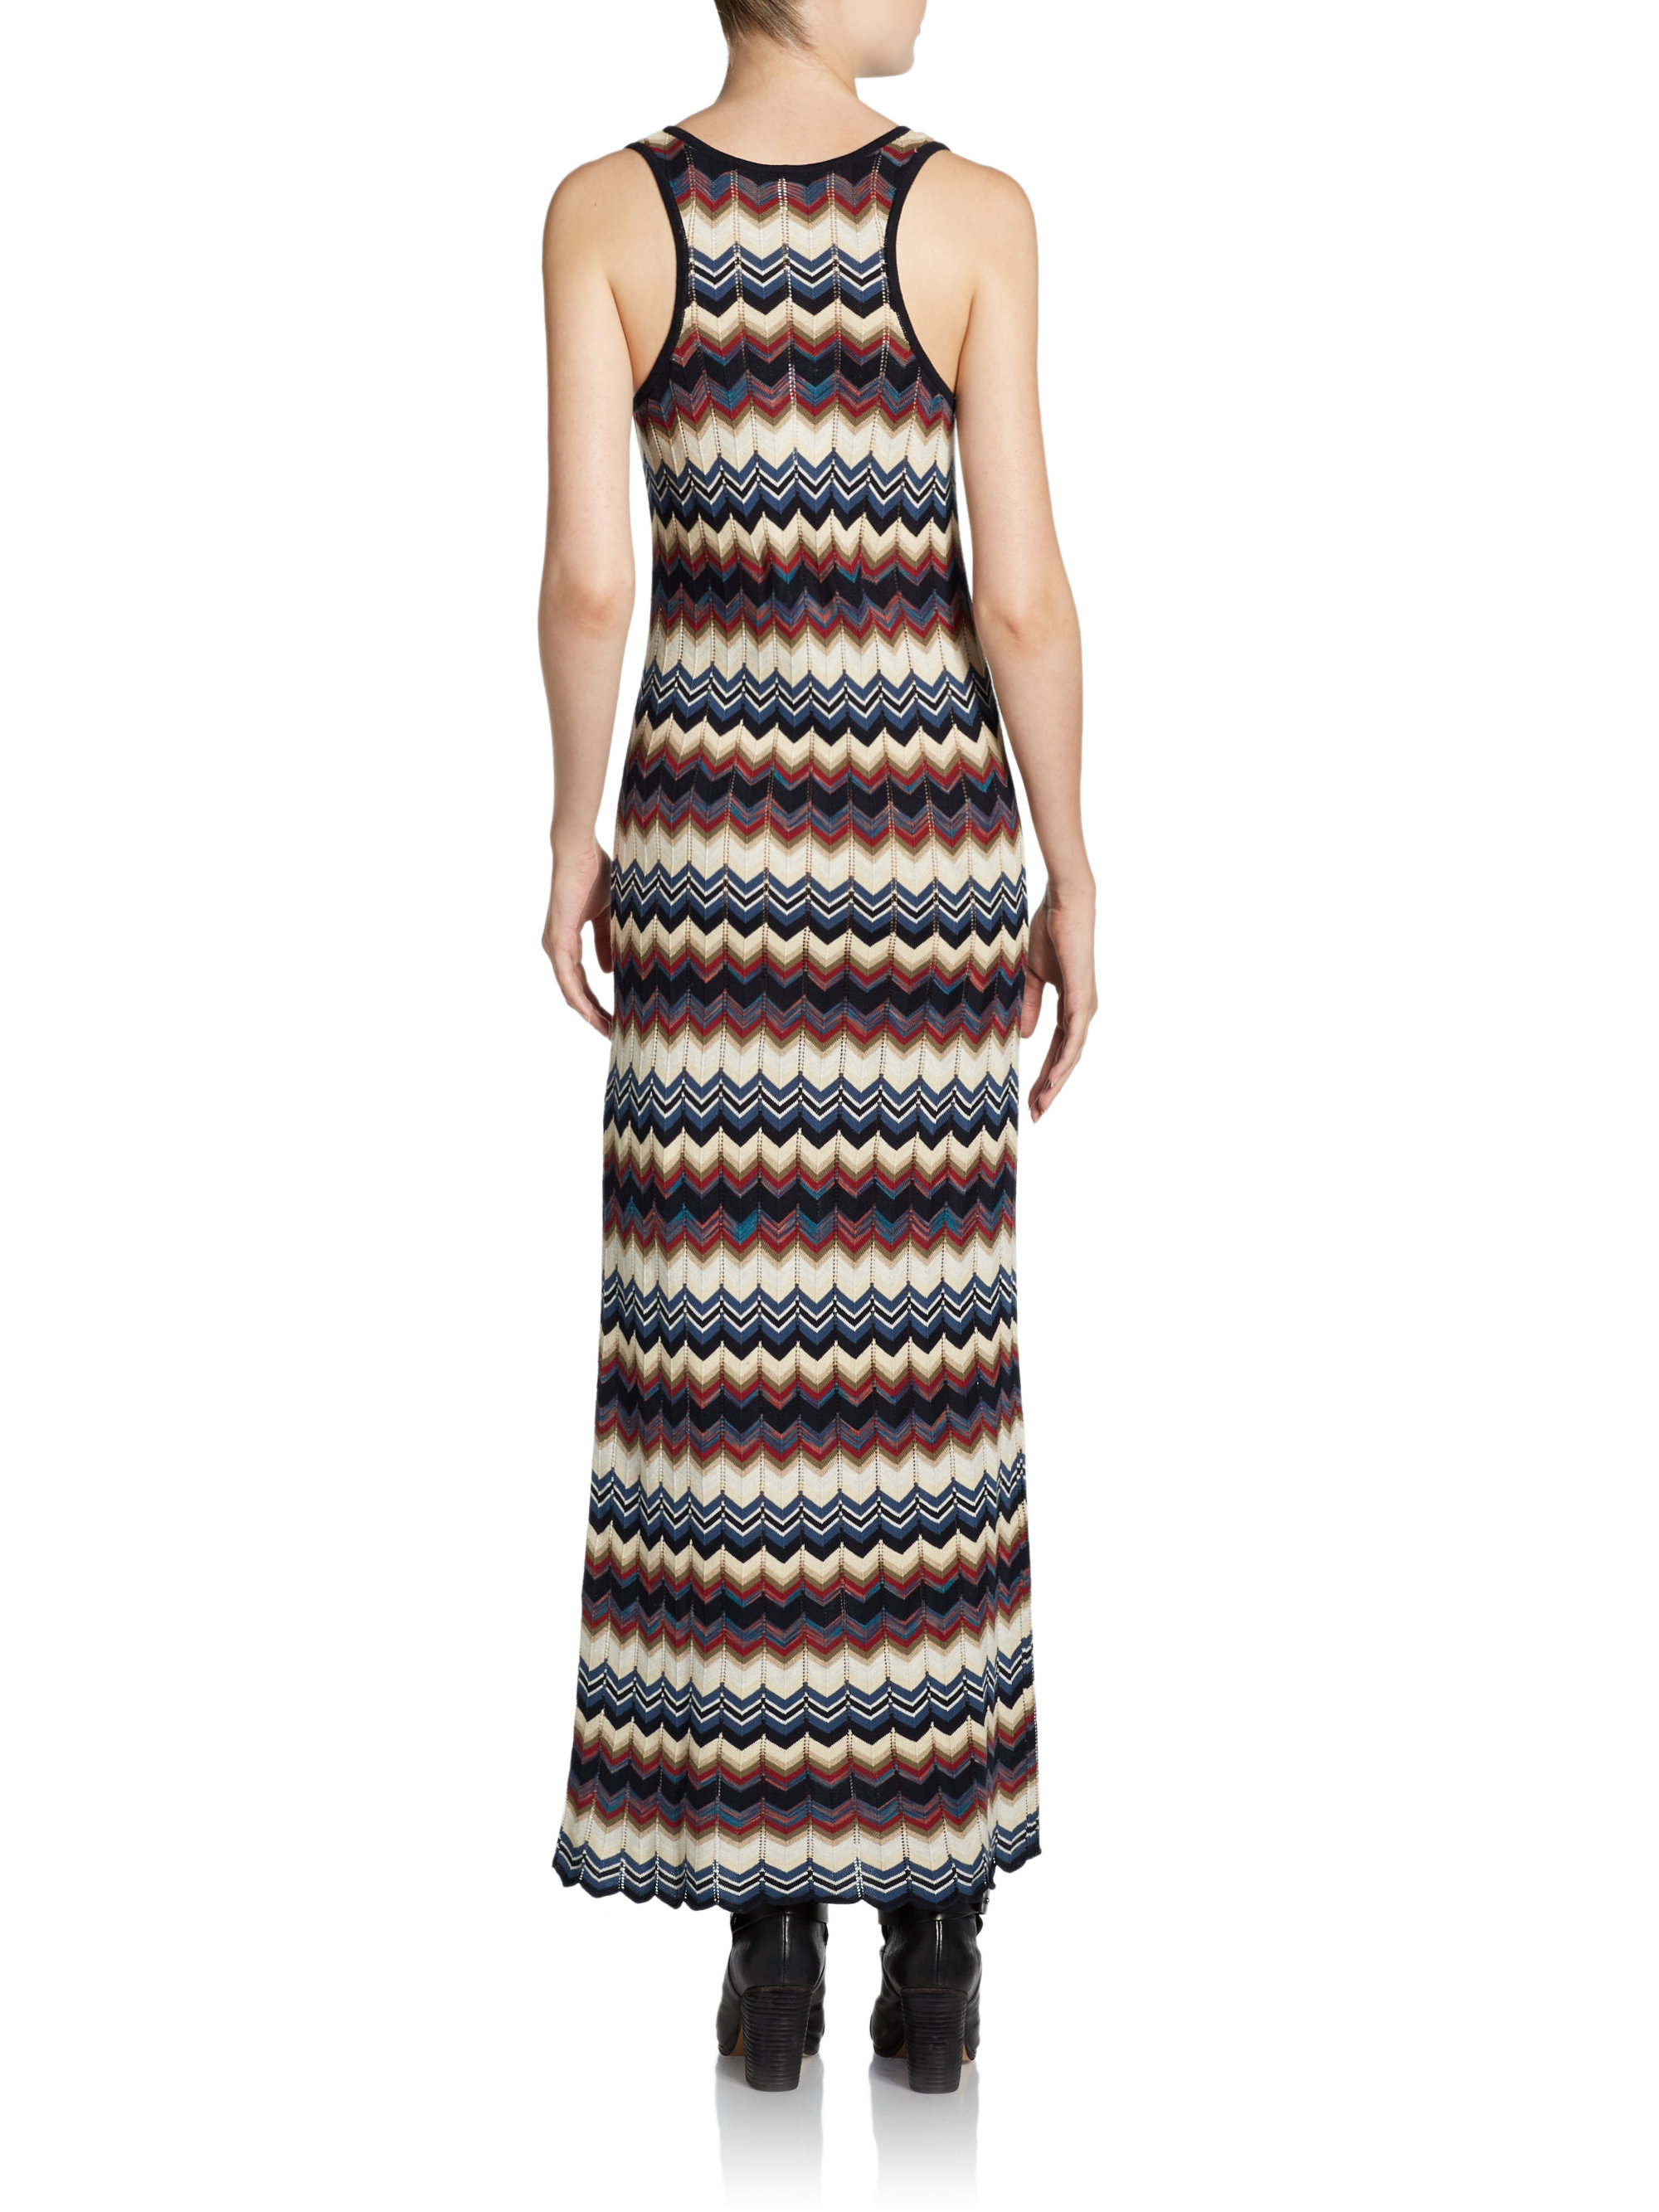 Autumn cashmere maxi dress